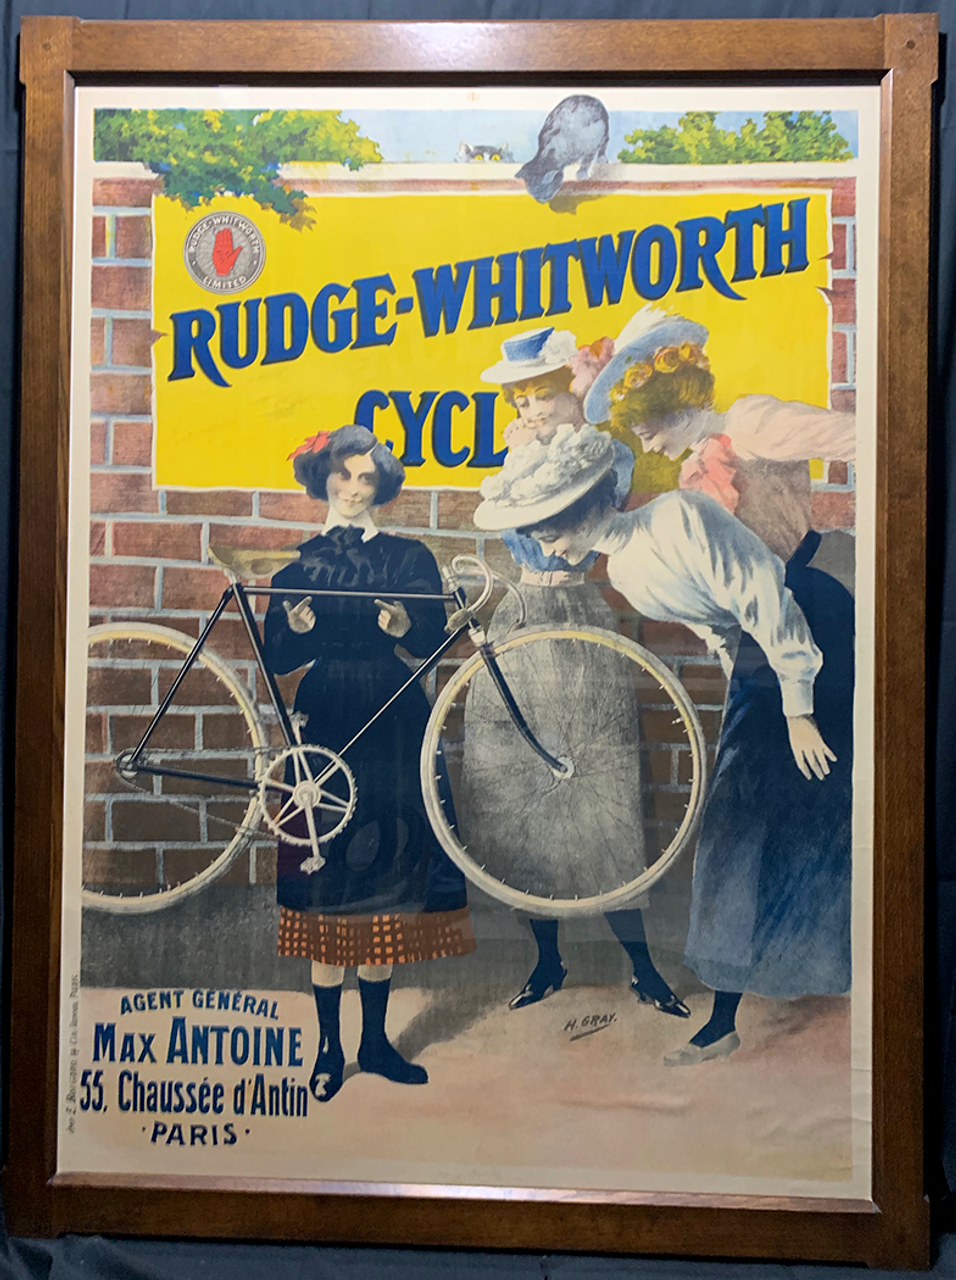 Rudge-Whitworth  Cycles Original Vintage  Bicycle Poster by H. Gray